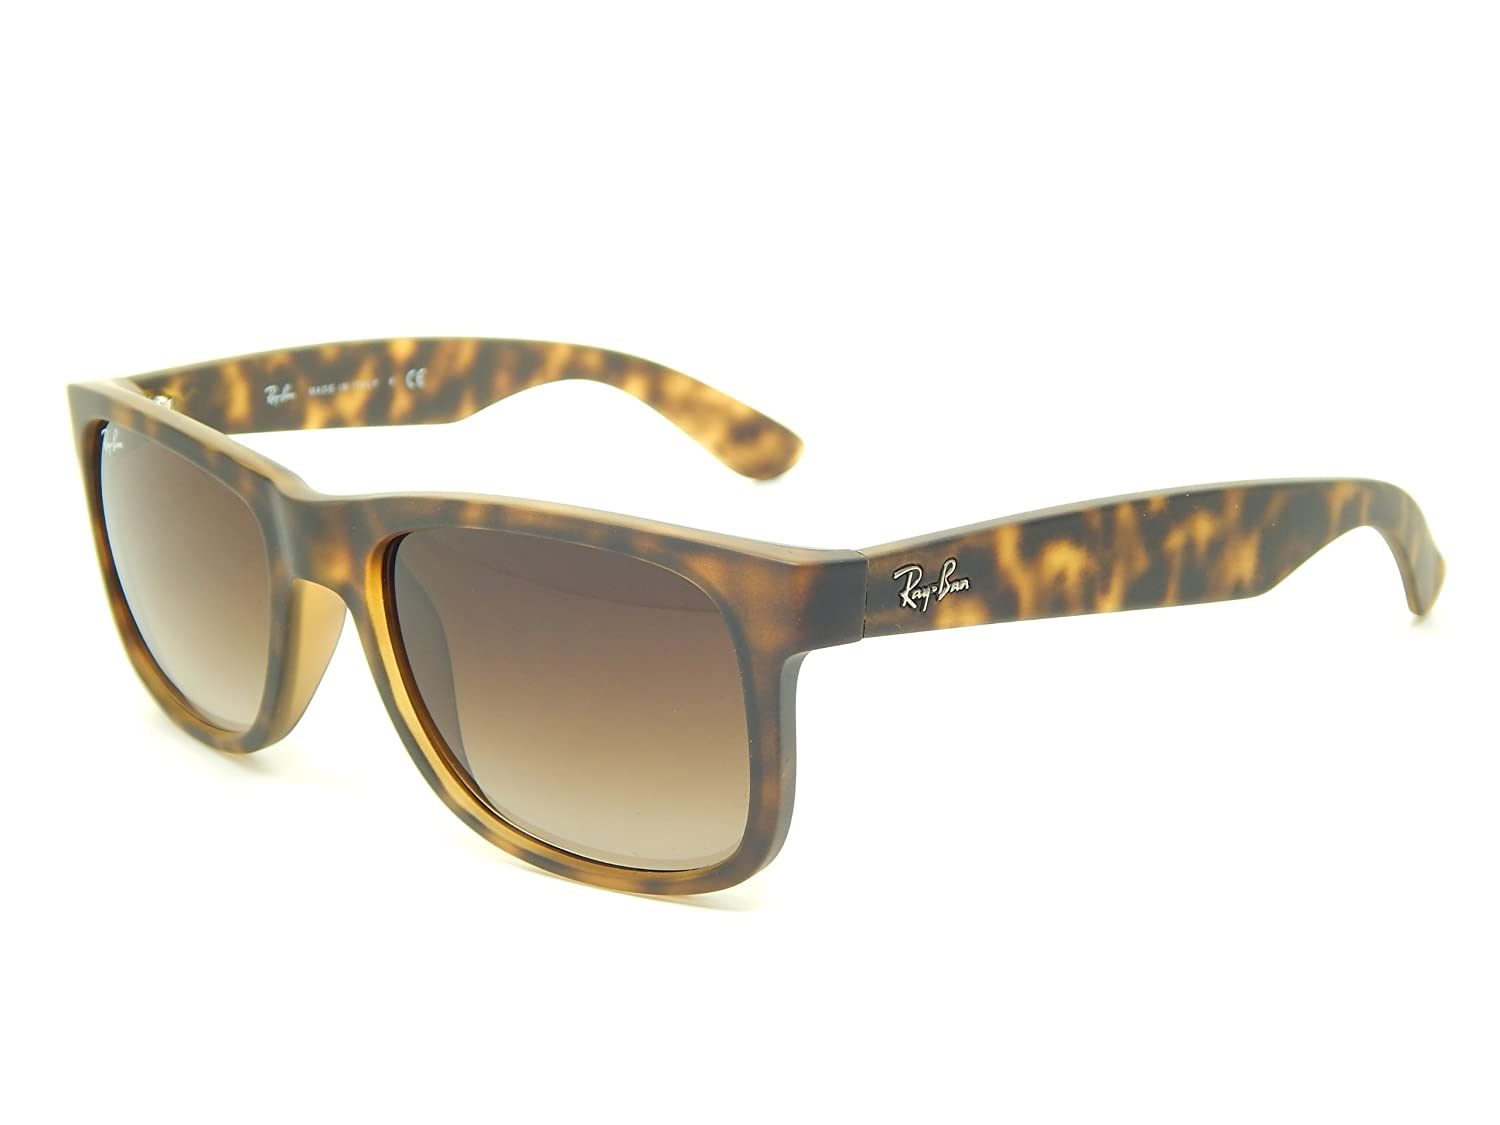 a103dd228e New Ray Ban Justin RB4165 710 13 Tortoise  Brown Gradient 55mm Sunglasses   Amazon.ca  Clothing   Accessories